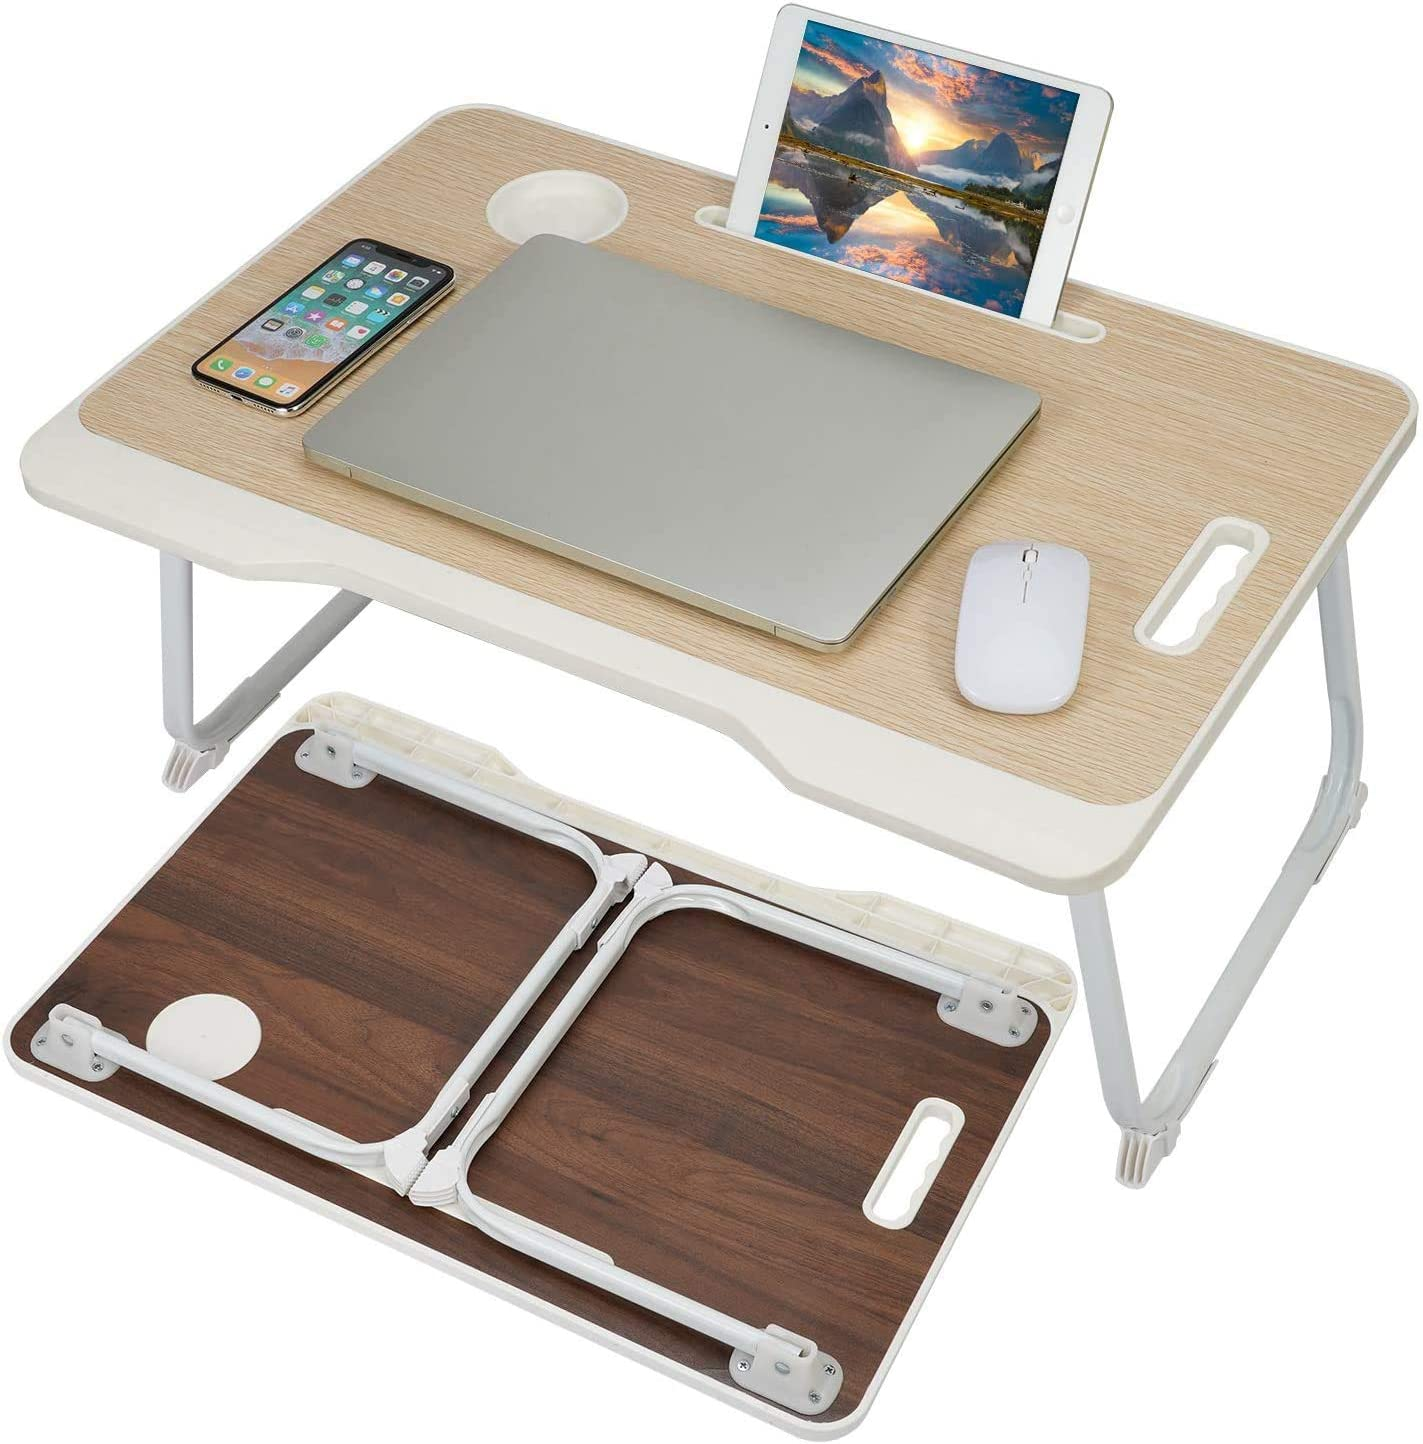 Laptop Bed Table, Foldable Lap Desk with Slot, Coffee Tea Table Breakfast Serving Tray with Cup Holder, Laptop Stand Reading Holder for Working, Folding Bed Desk for Bed/Sofa/Couch/Floor